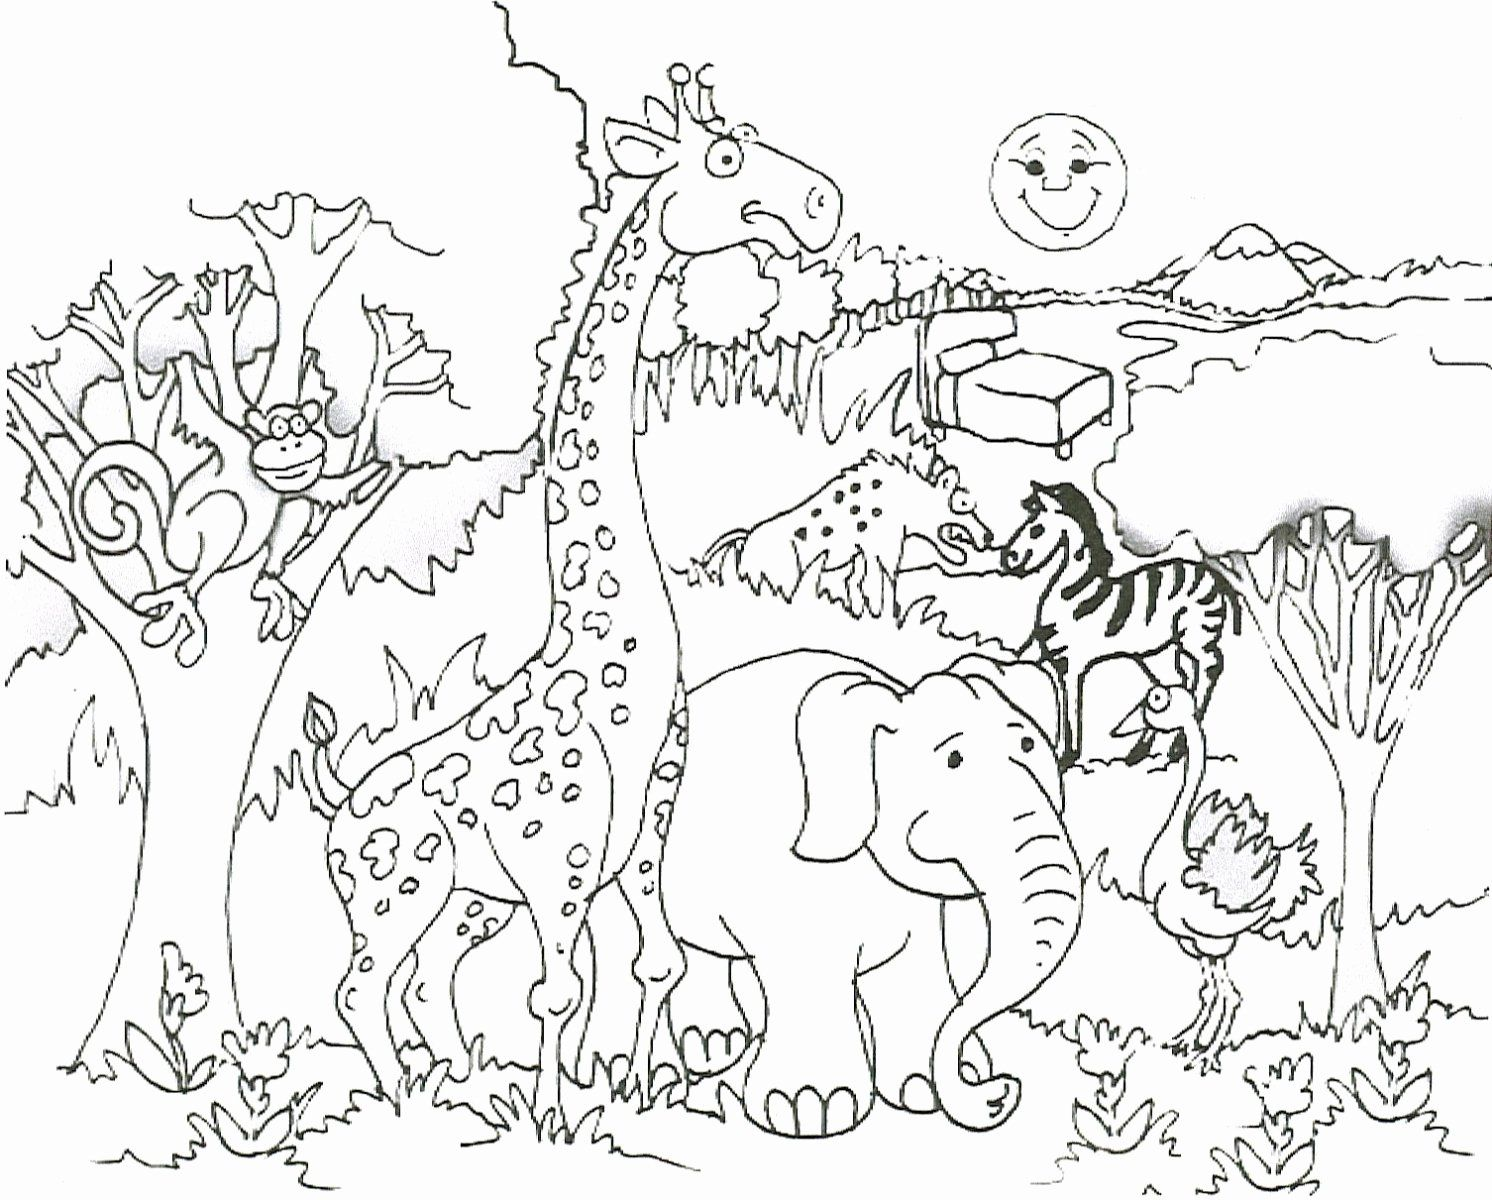 Printables Zoo Animals Awesome Zoo Coloring Pages For Adults Best Ideas For Printable An Zoo Animal Coloring Pages Giraffe Coloring Pages Animal Coloring Books